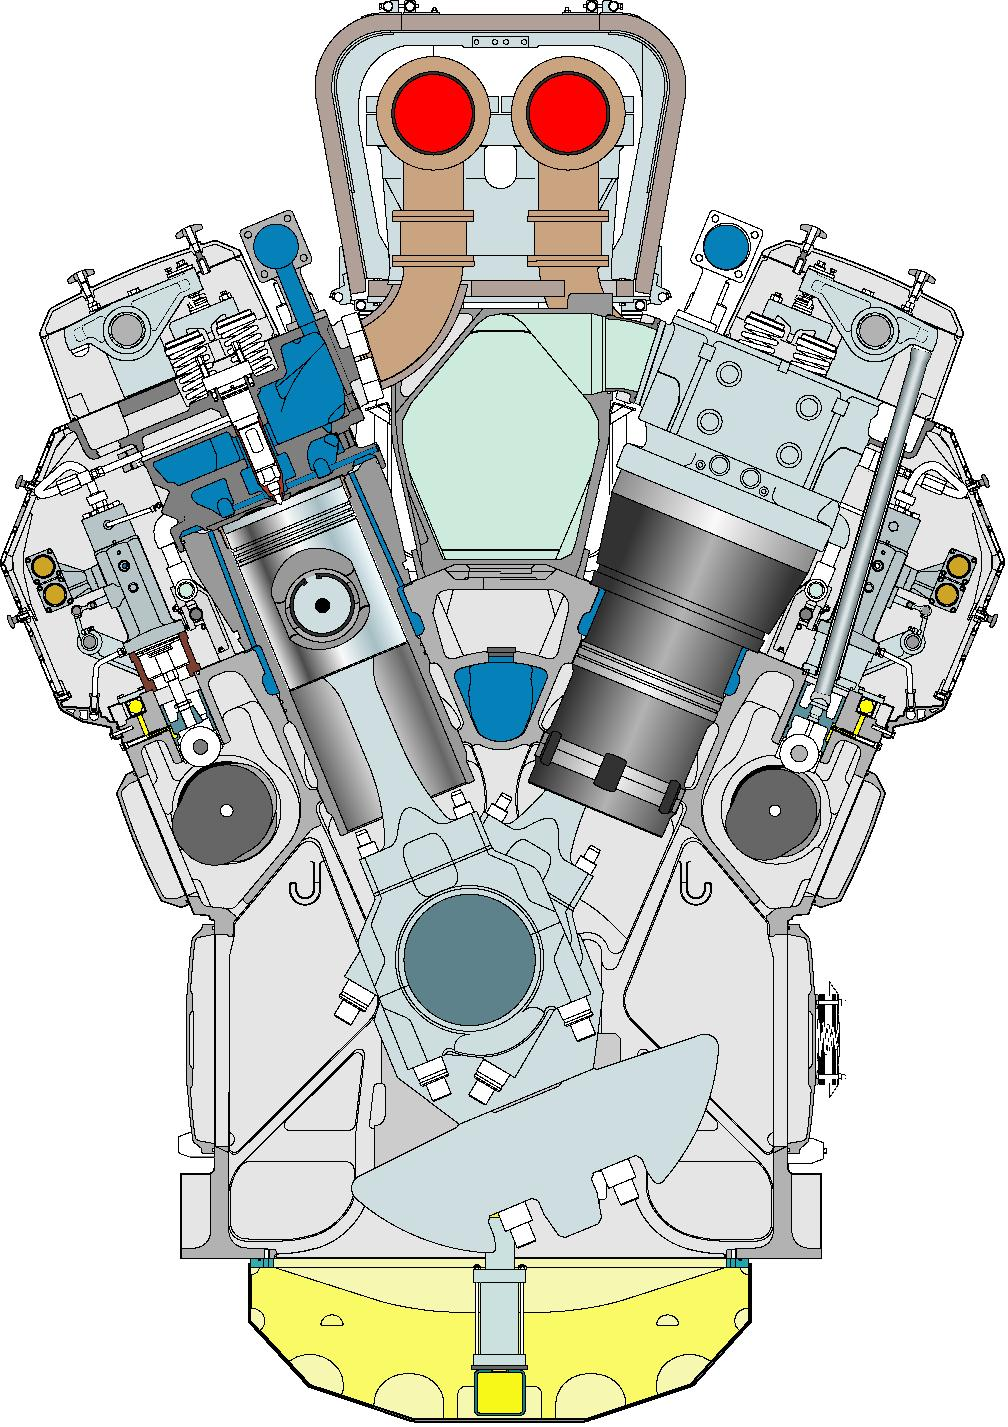 Oasis Of The Seas Engine Room: CFD Analysis About Valve Overlap